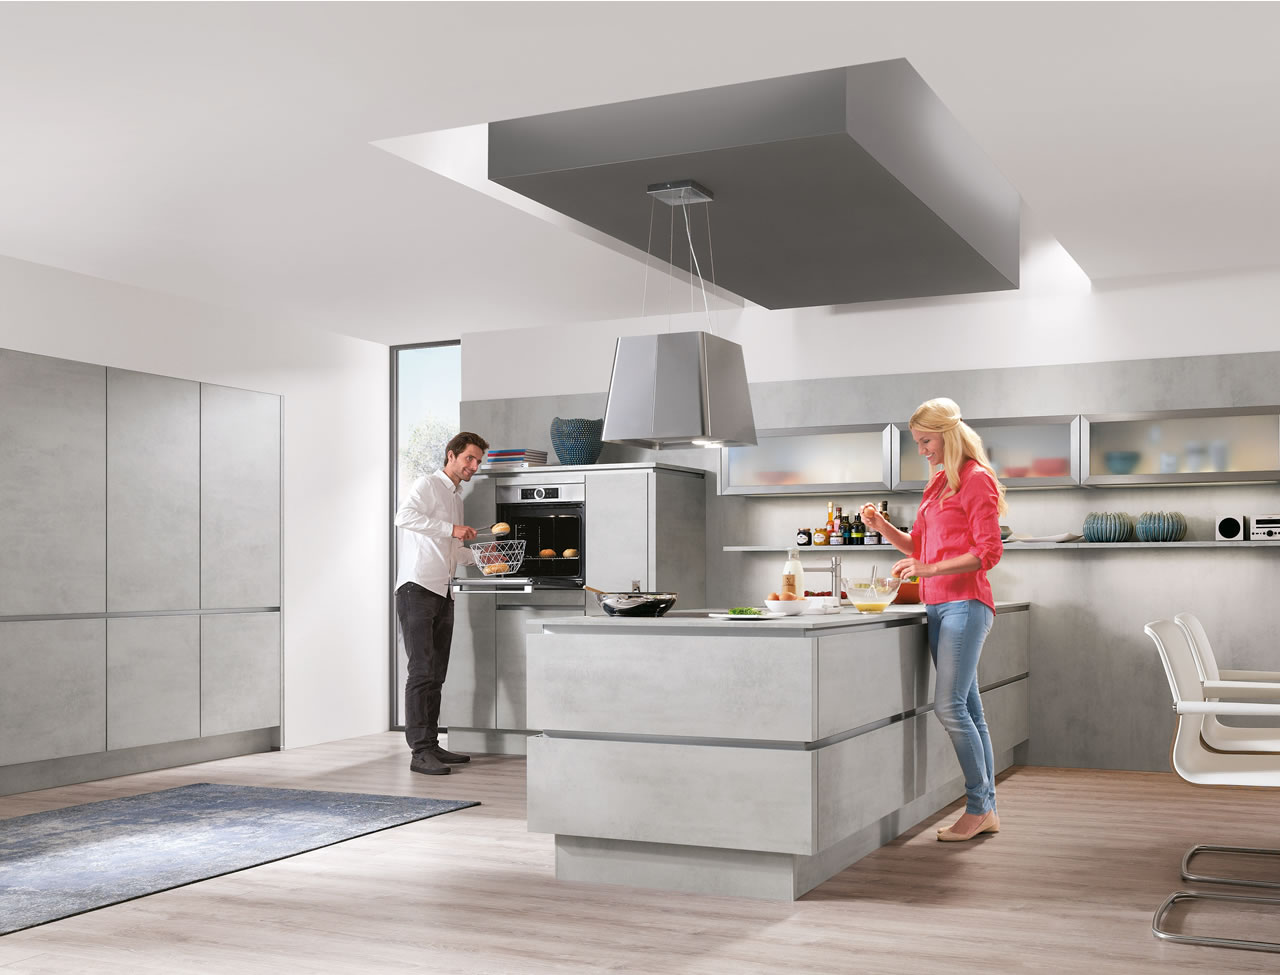 Nobilia Küchen Line N I-home Kitchens – Nobilia Kitchens & German Kitchens